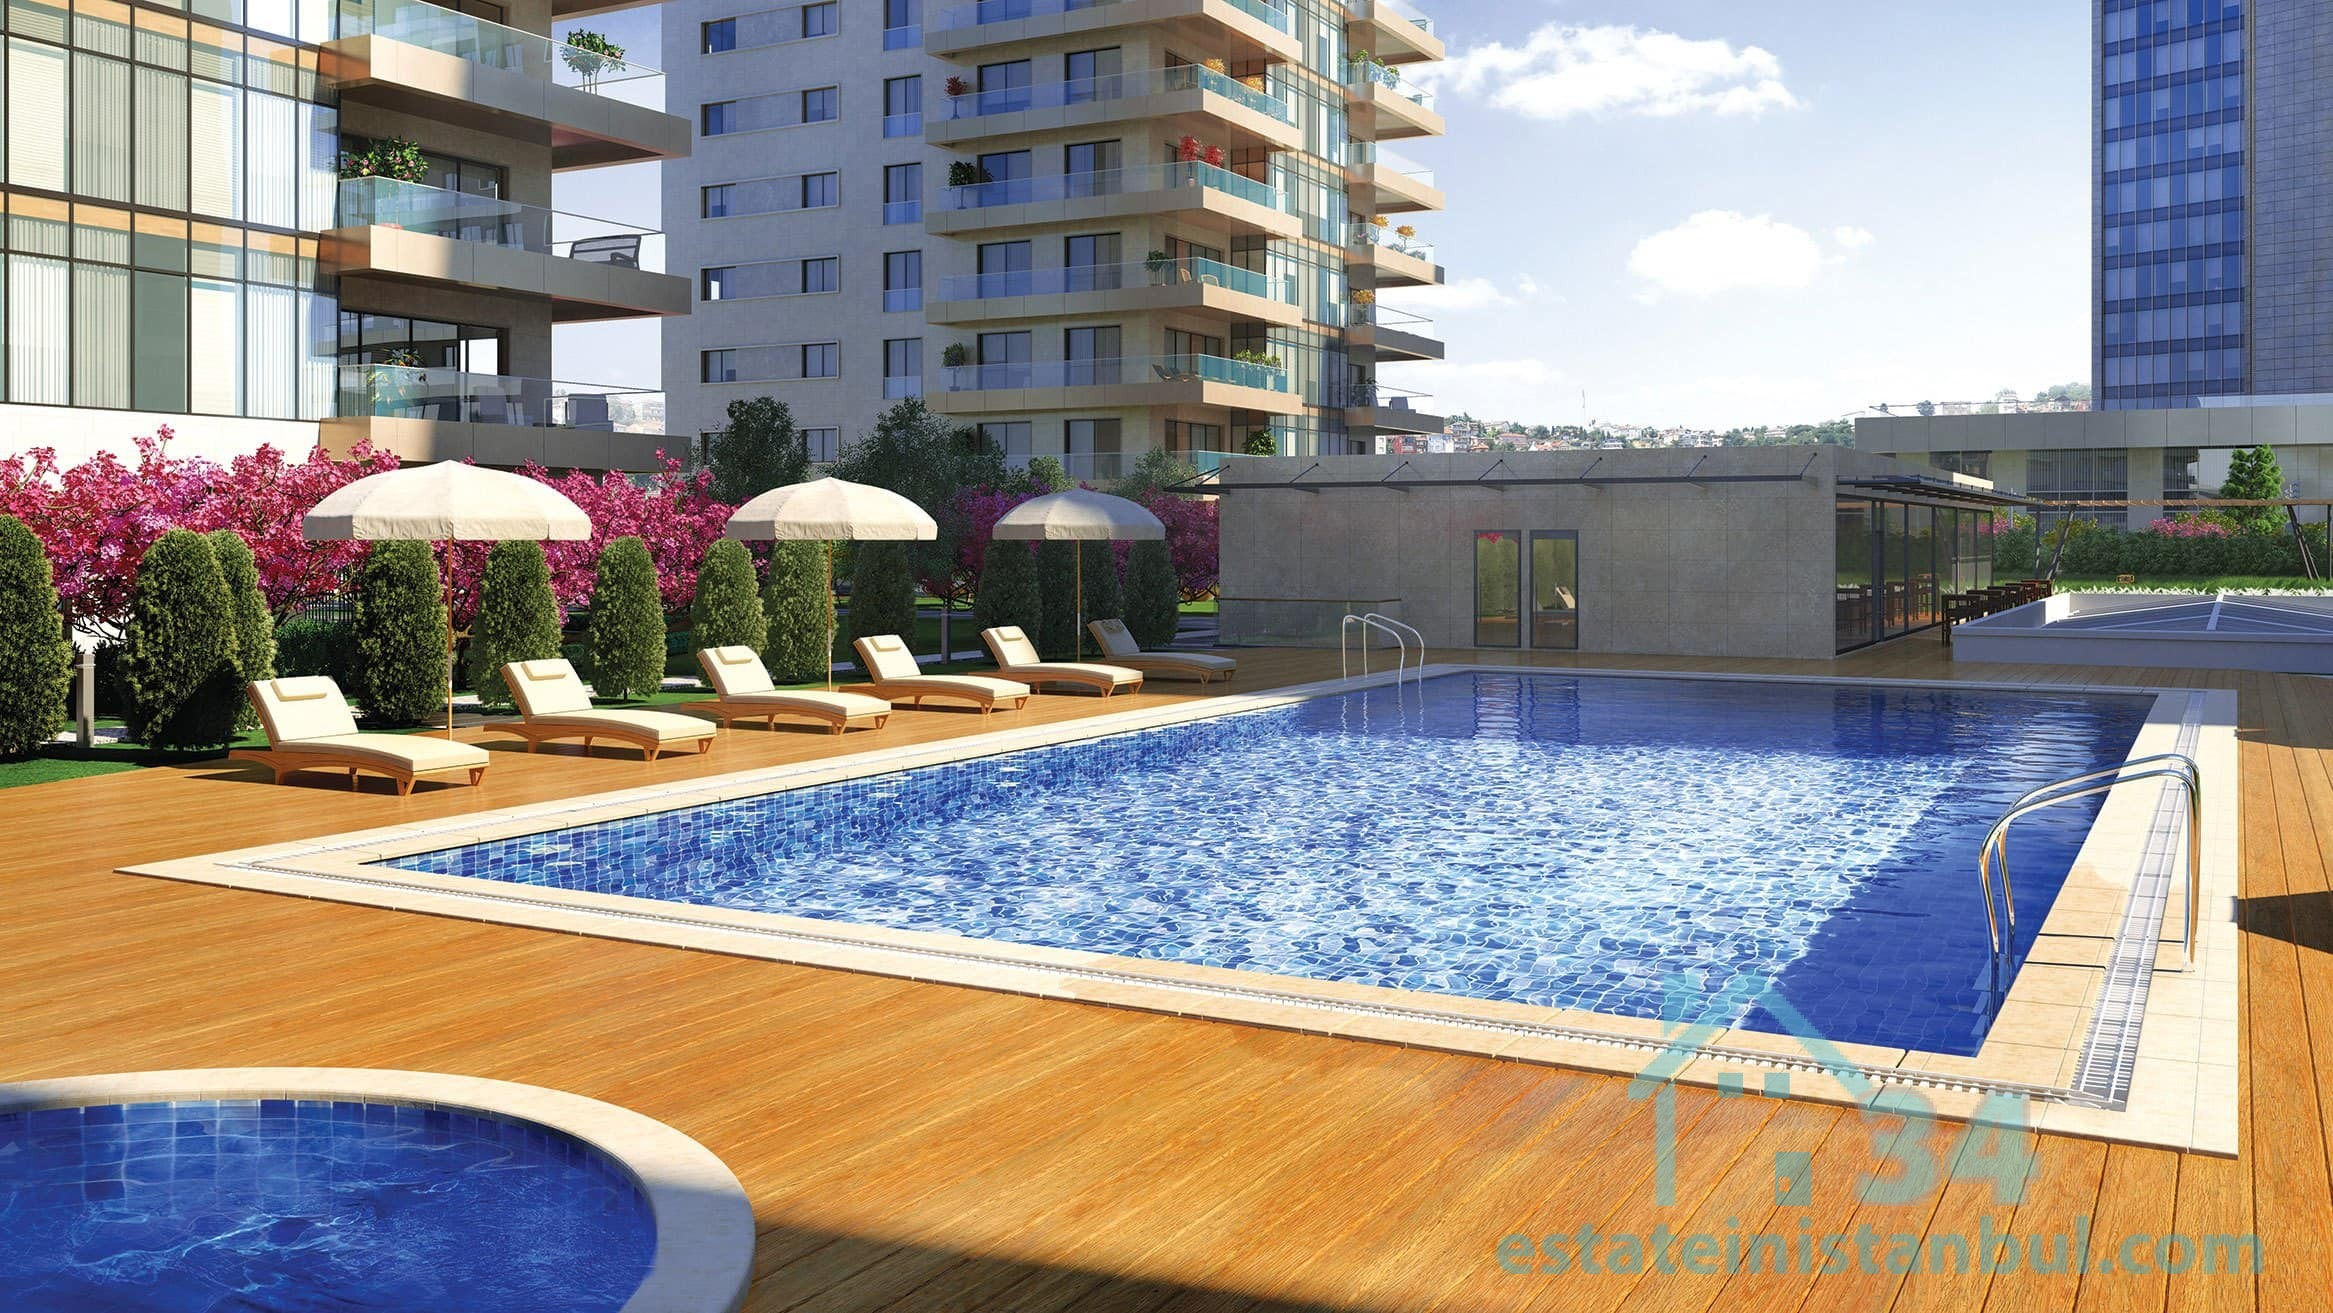 Newly Built Modern & Luxurious FOUR Bedroom Apartments By The Sea In The Heart Of Istanbul